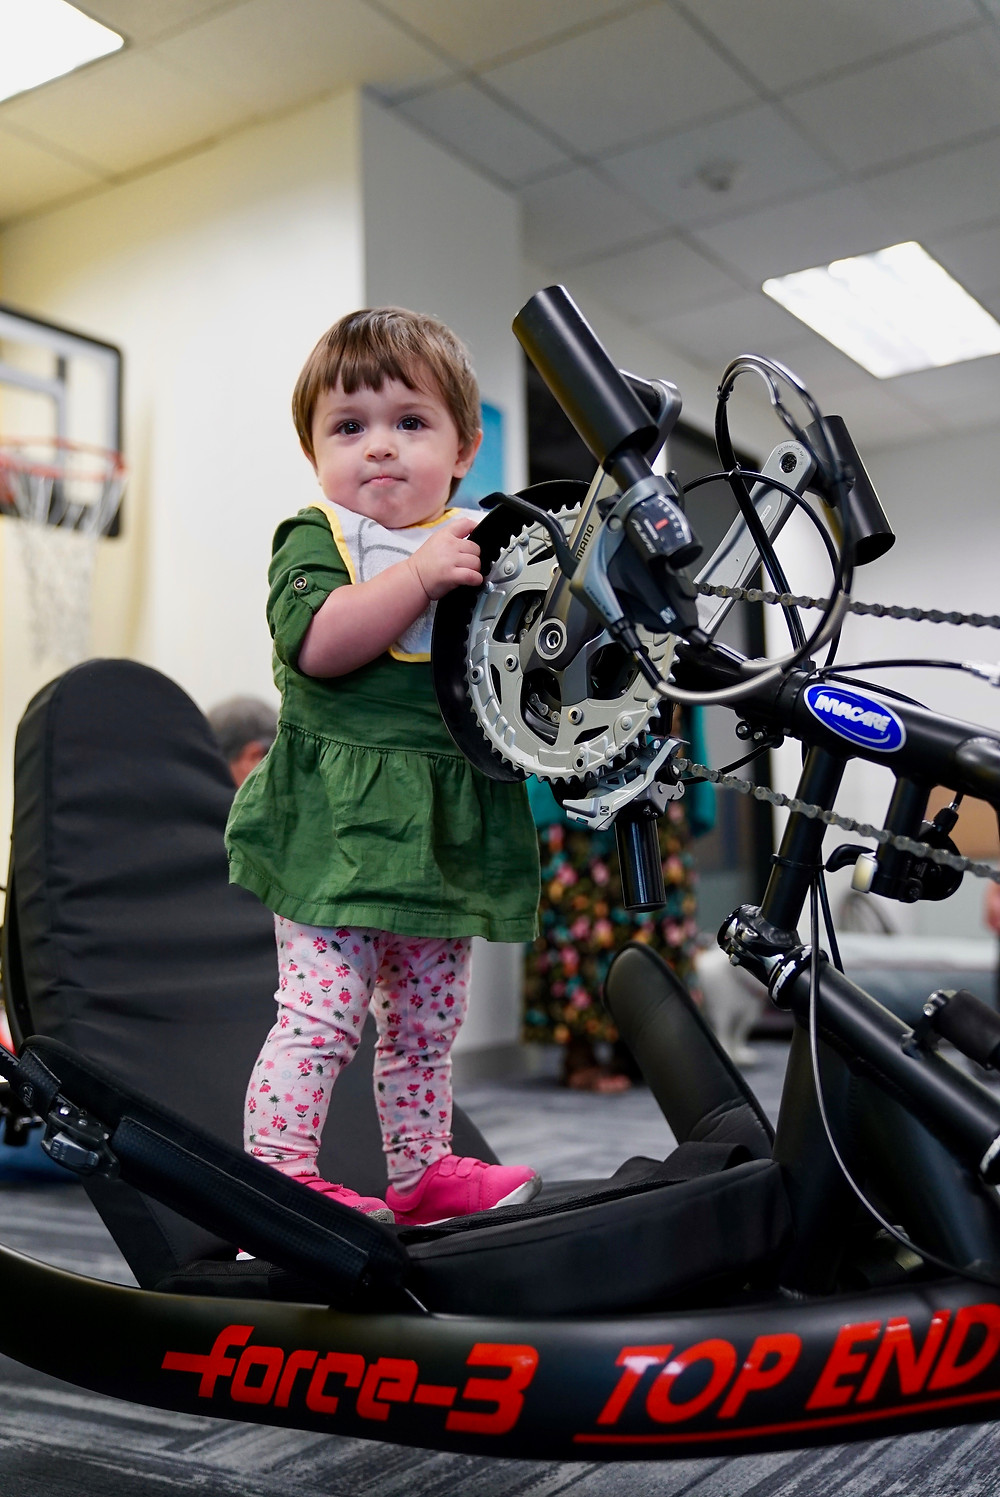 A young girl proudly stands on a handcycle